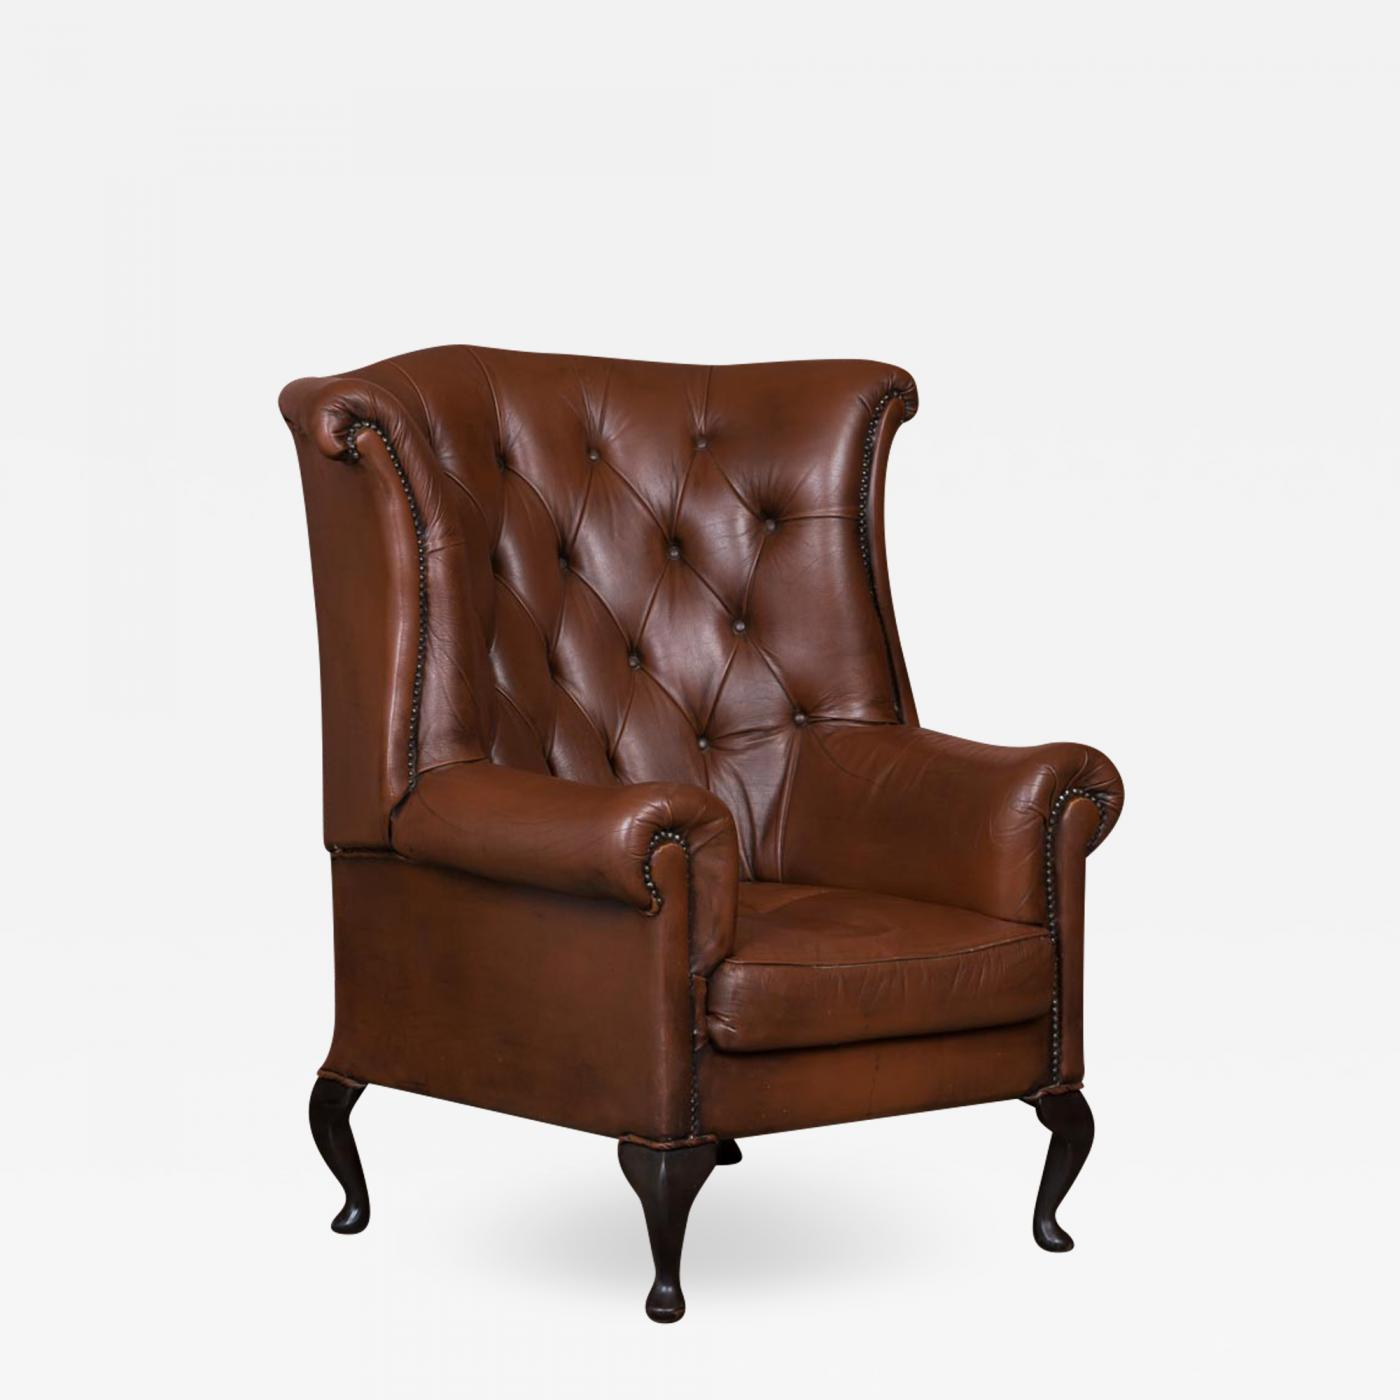 Brown Leather Wingback Chair Early 20th Century Danish Brown Leather Wing Back Chair